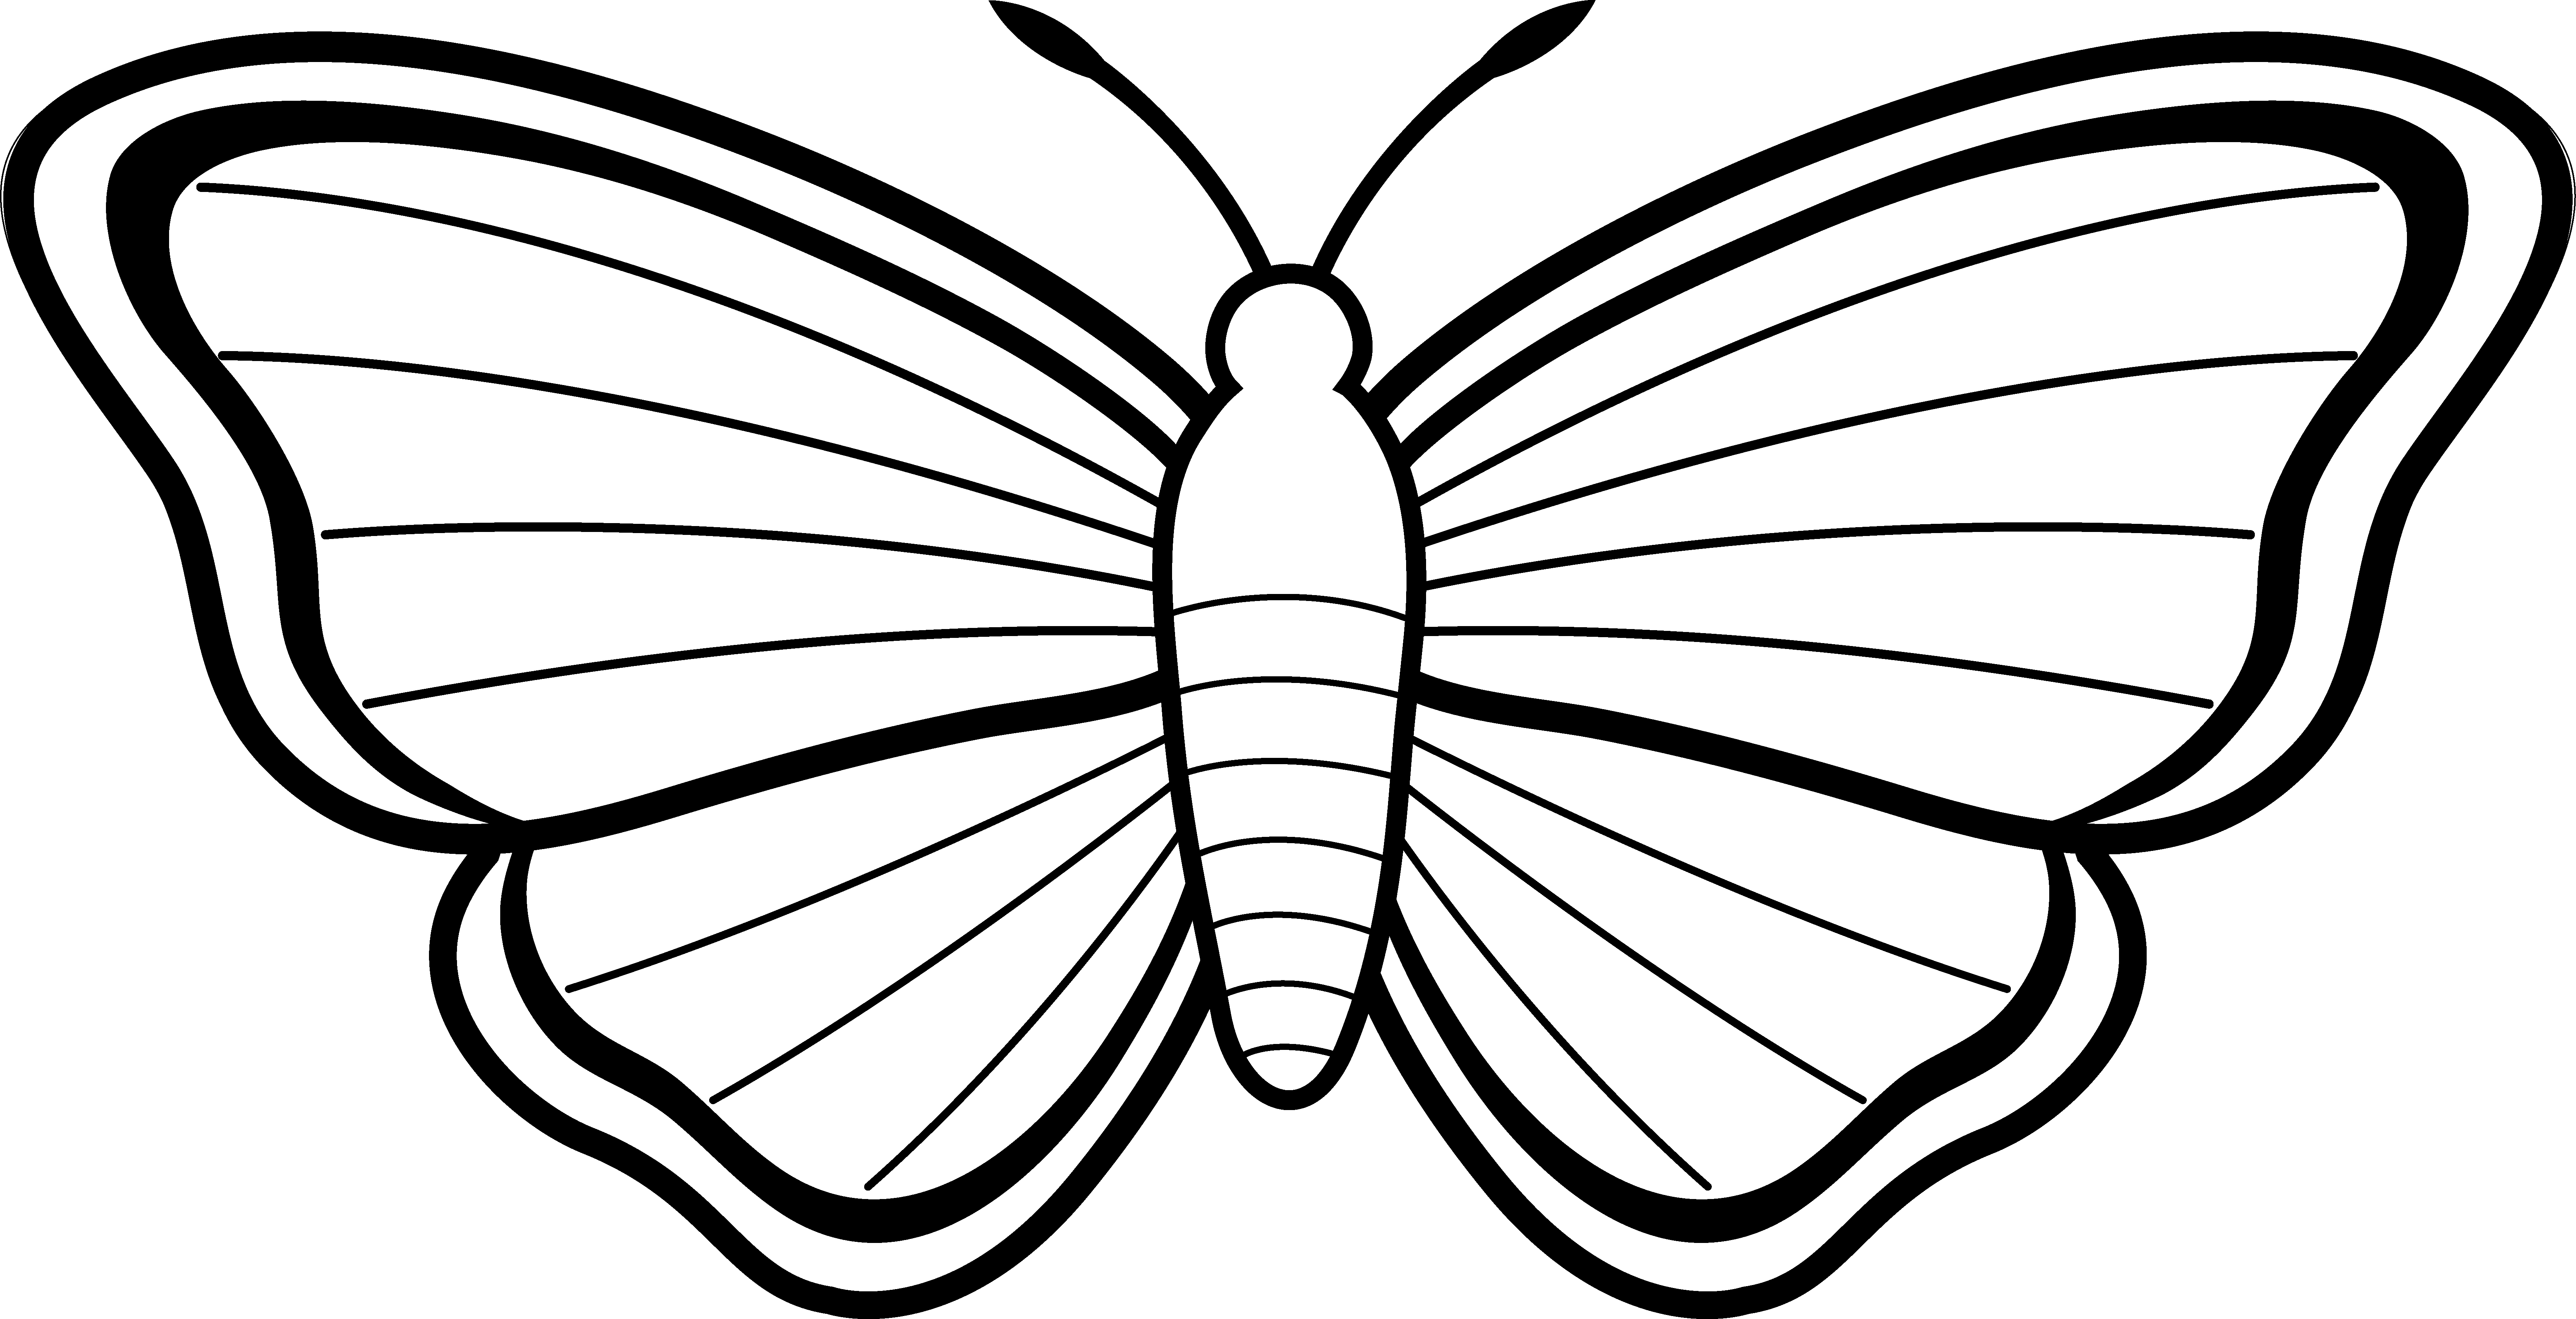 Moth drawing at getdrawings. 3 clipart butterfly jpg black and white library